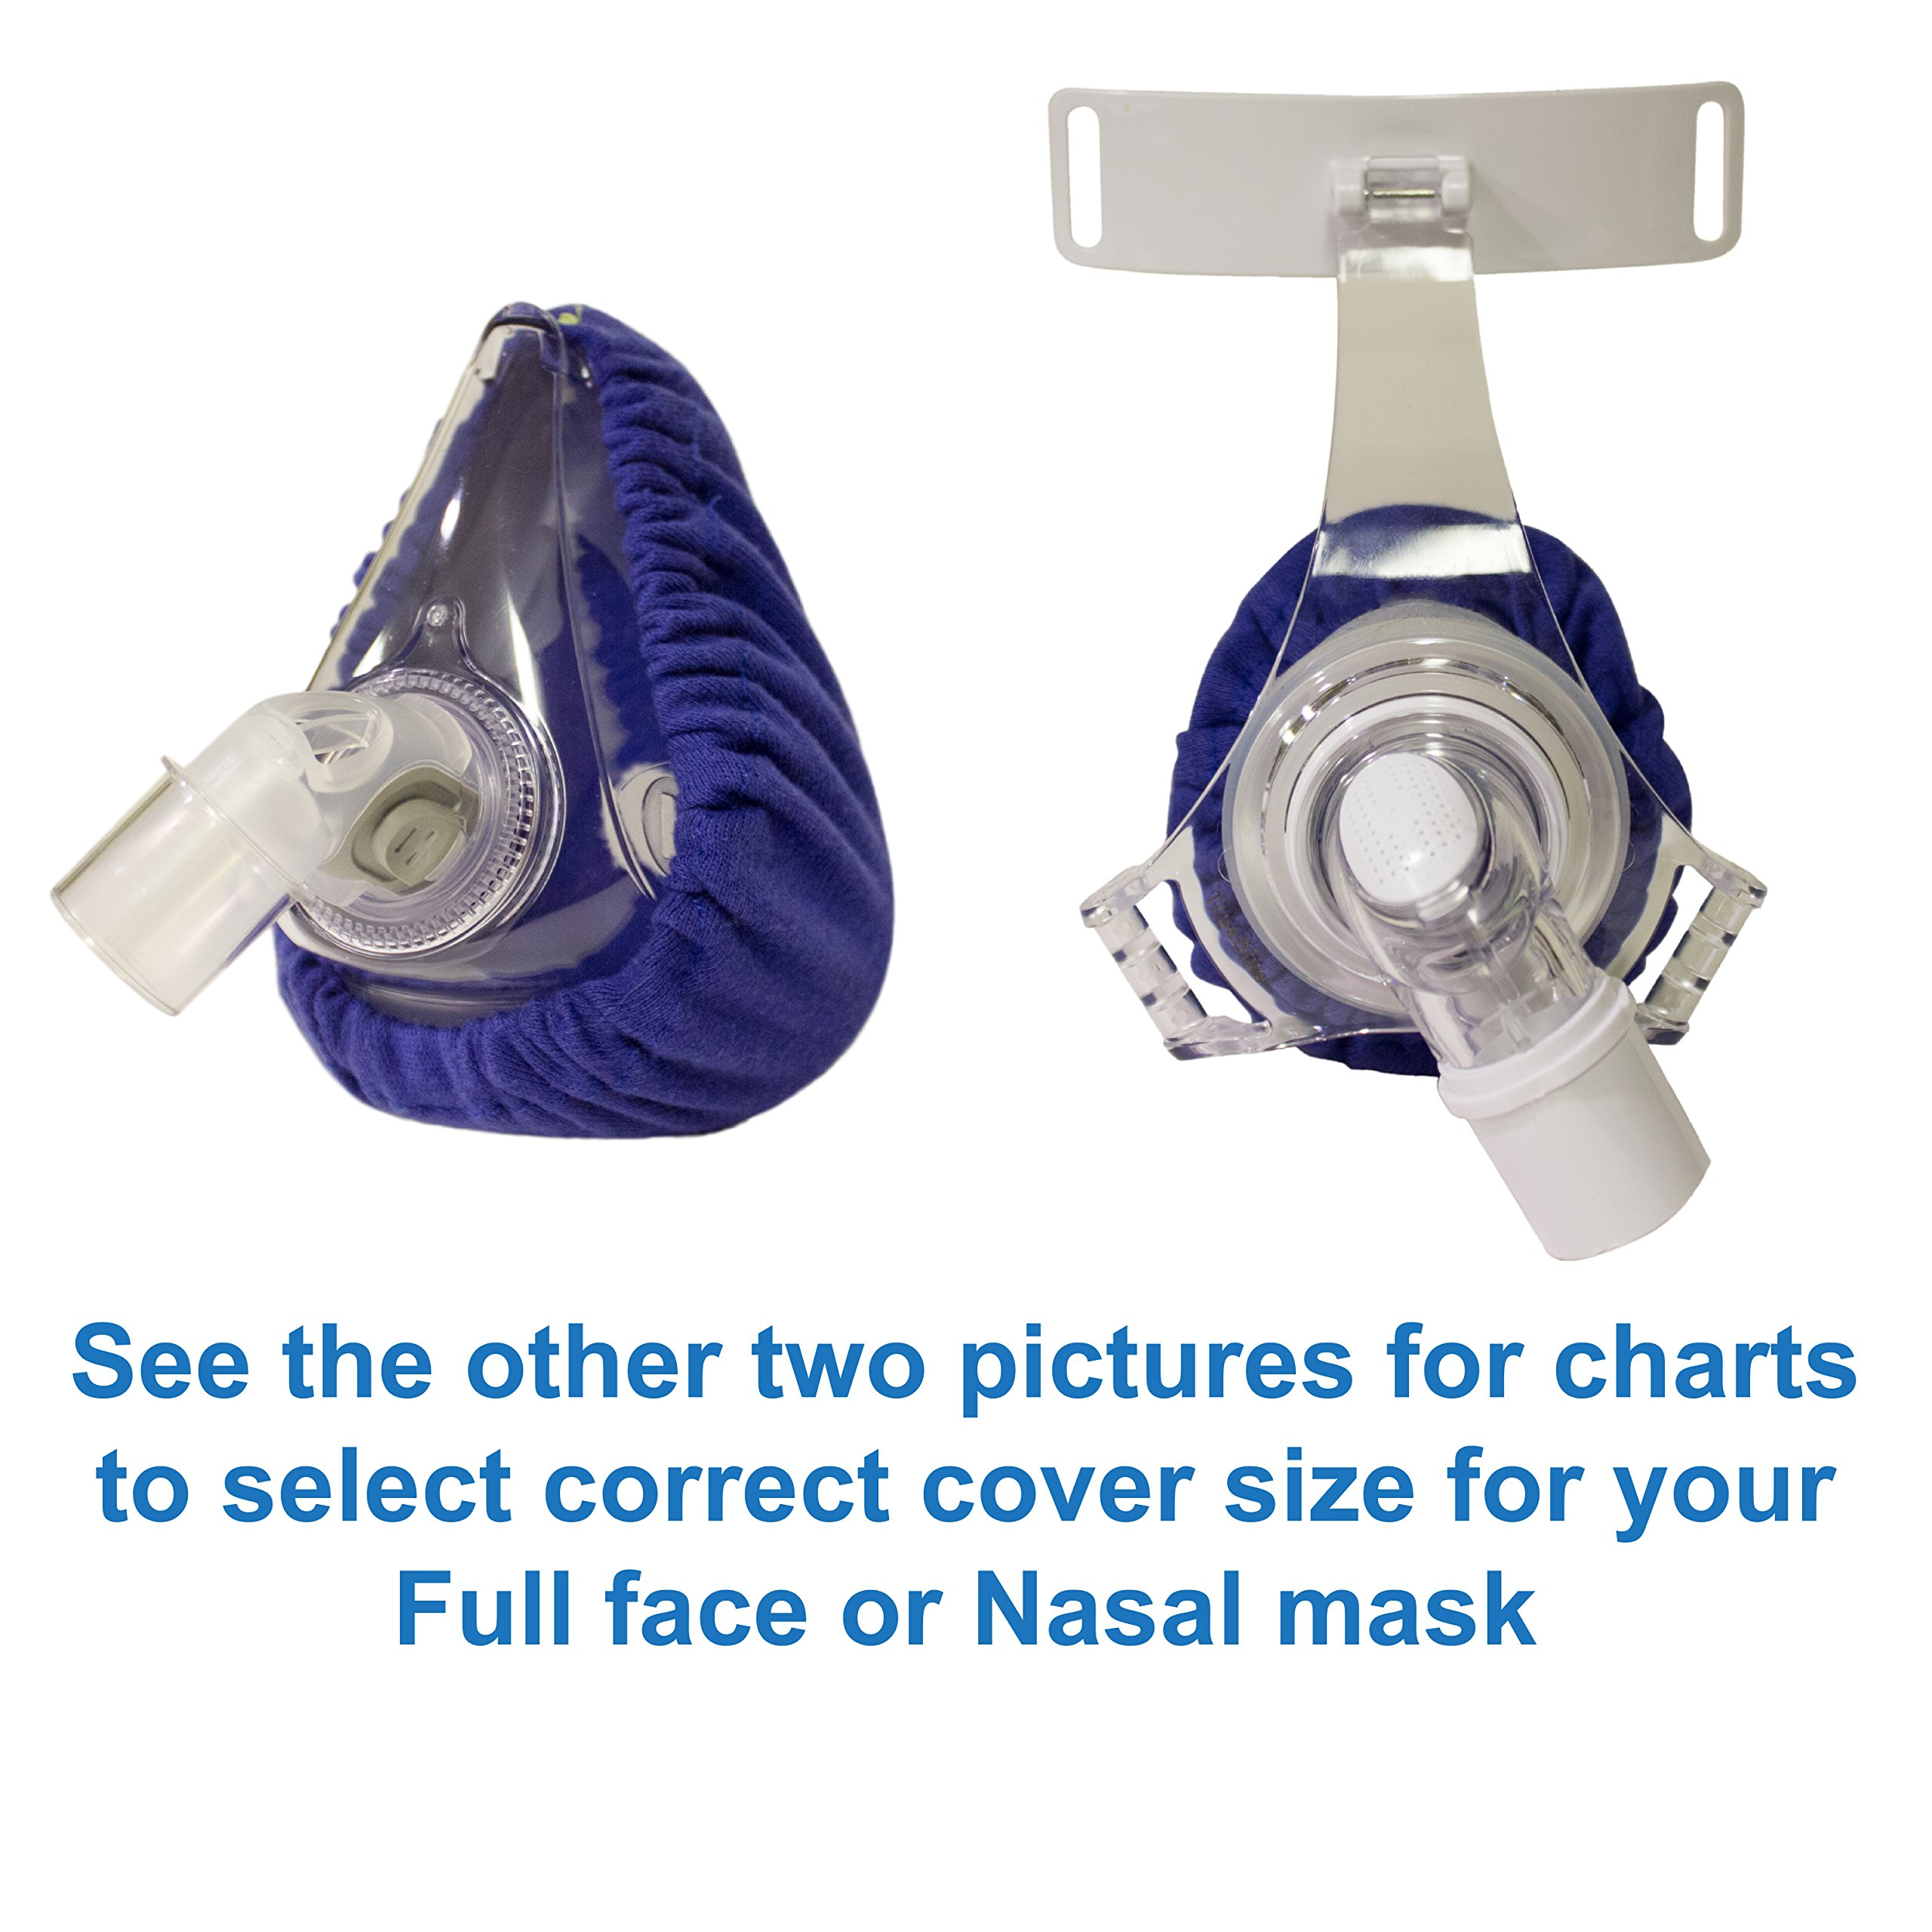 CPAP Mask Liners - Reusable Comfort Covers (#7590)